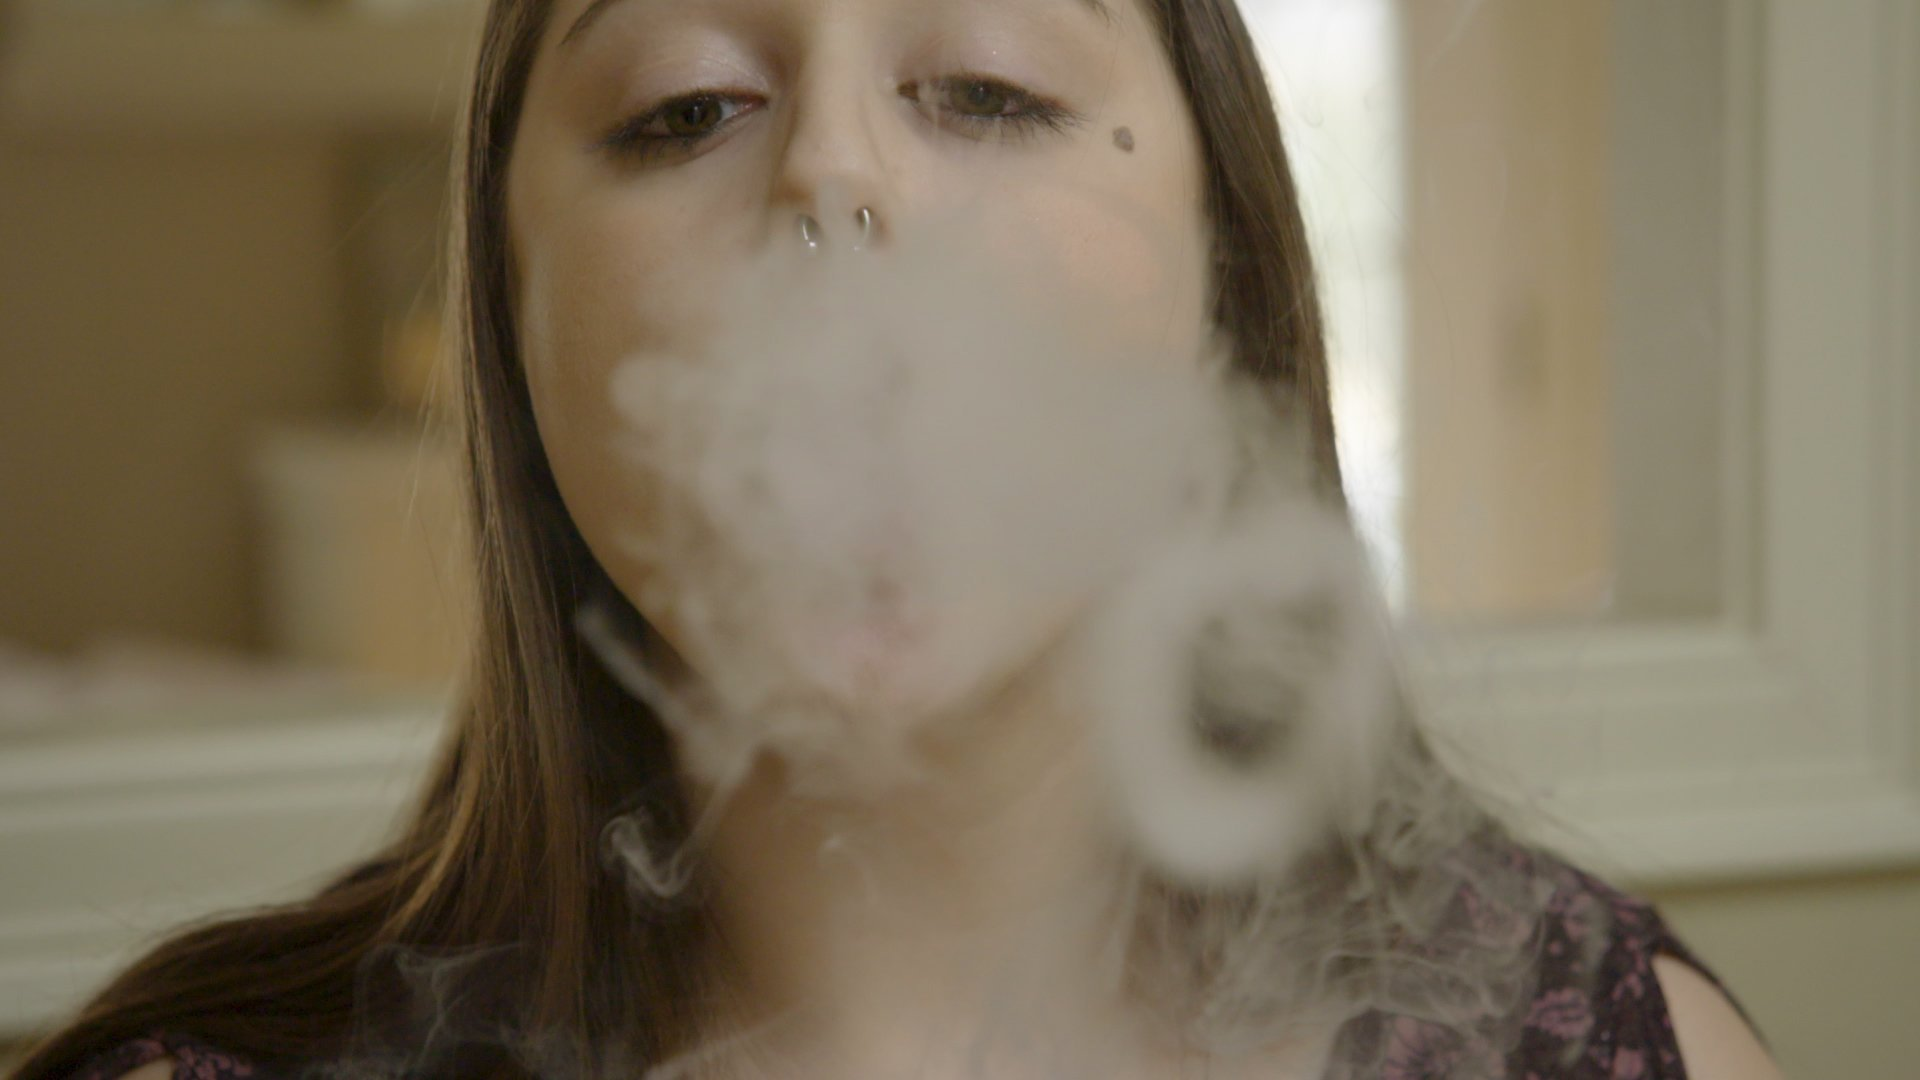 Researchers collected trash from high school grounds to better understand teen vaping and smoking